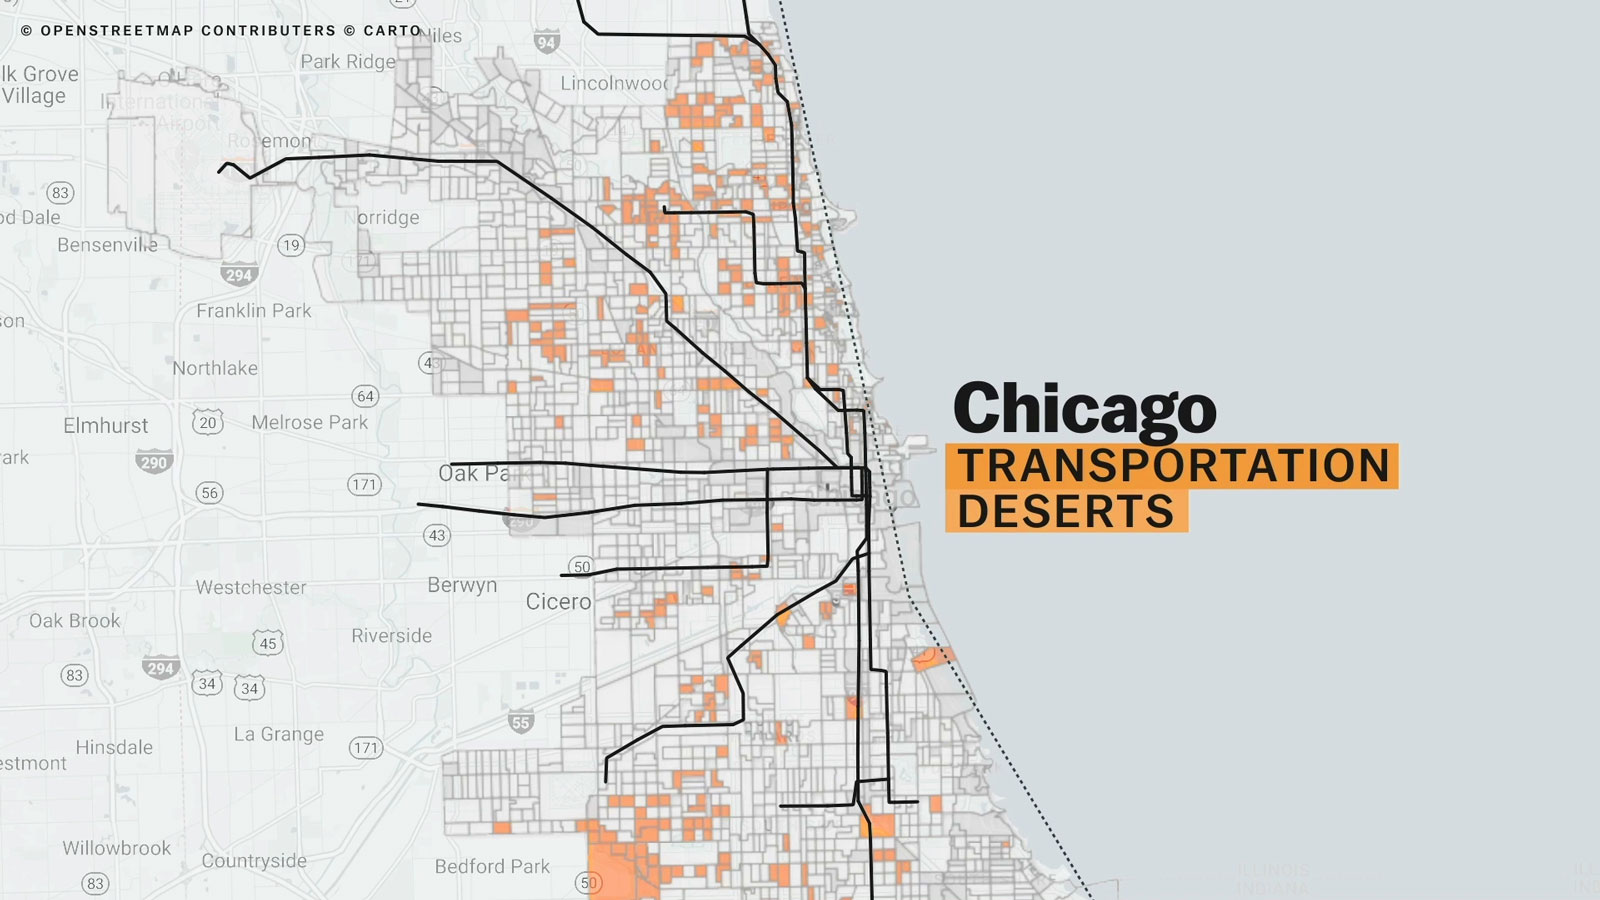 areas in Chicago where transit need is not met